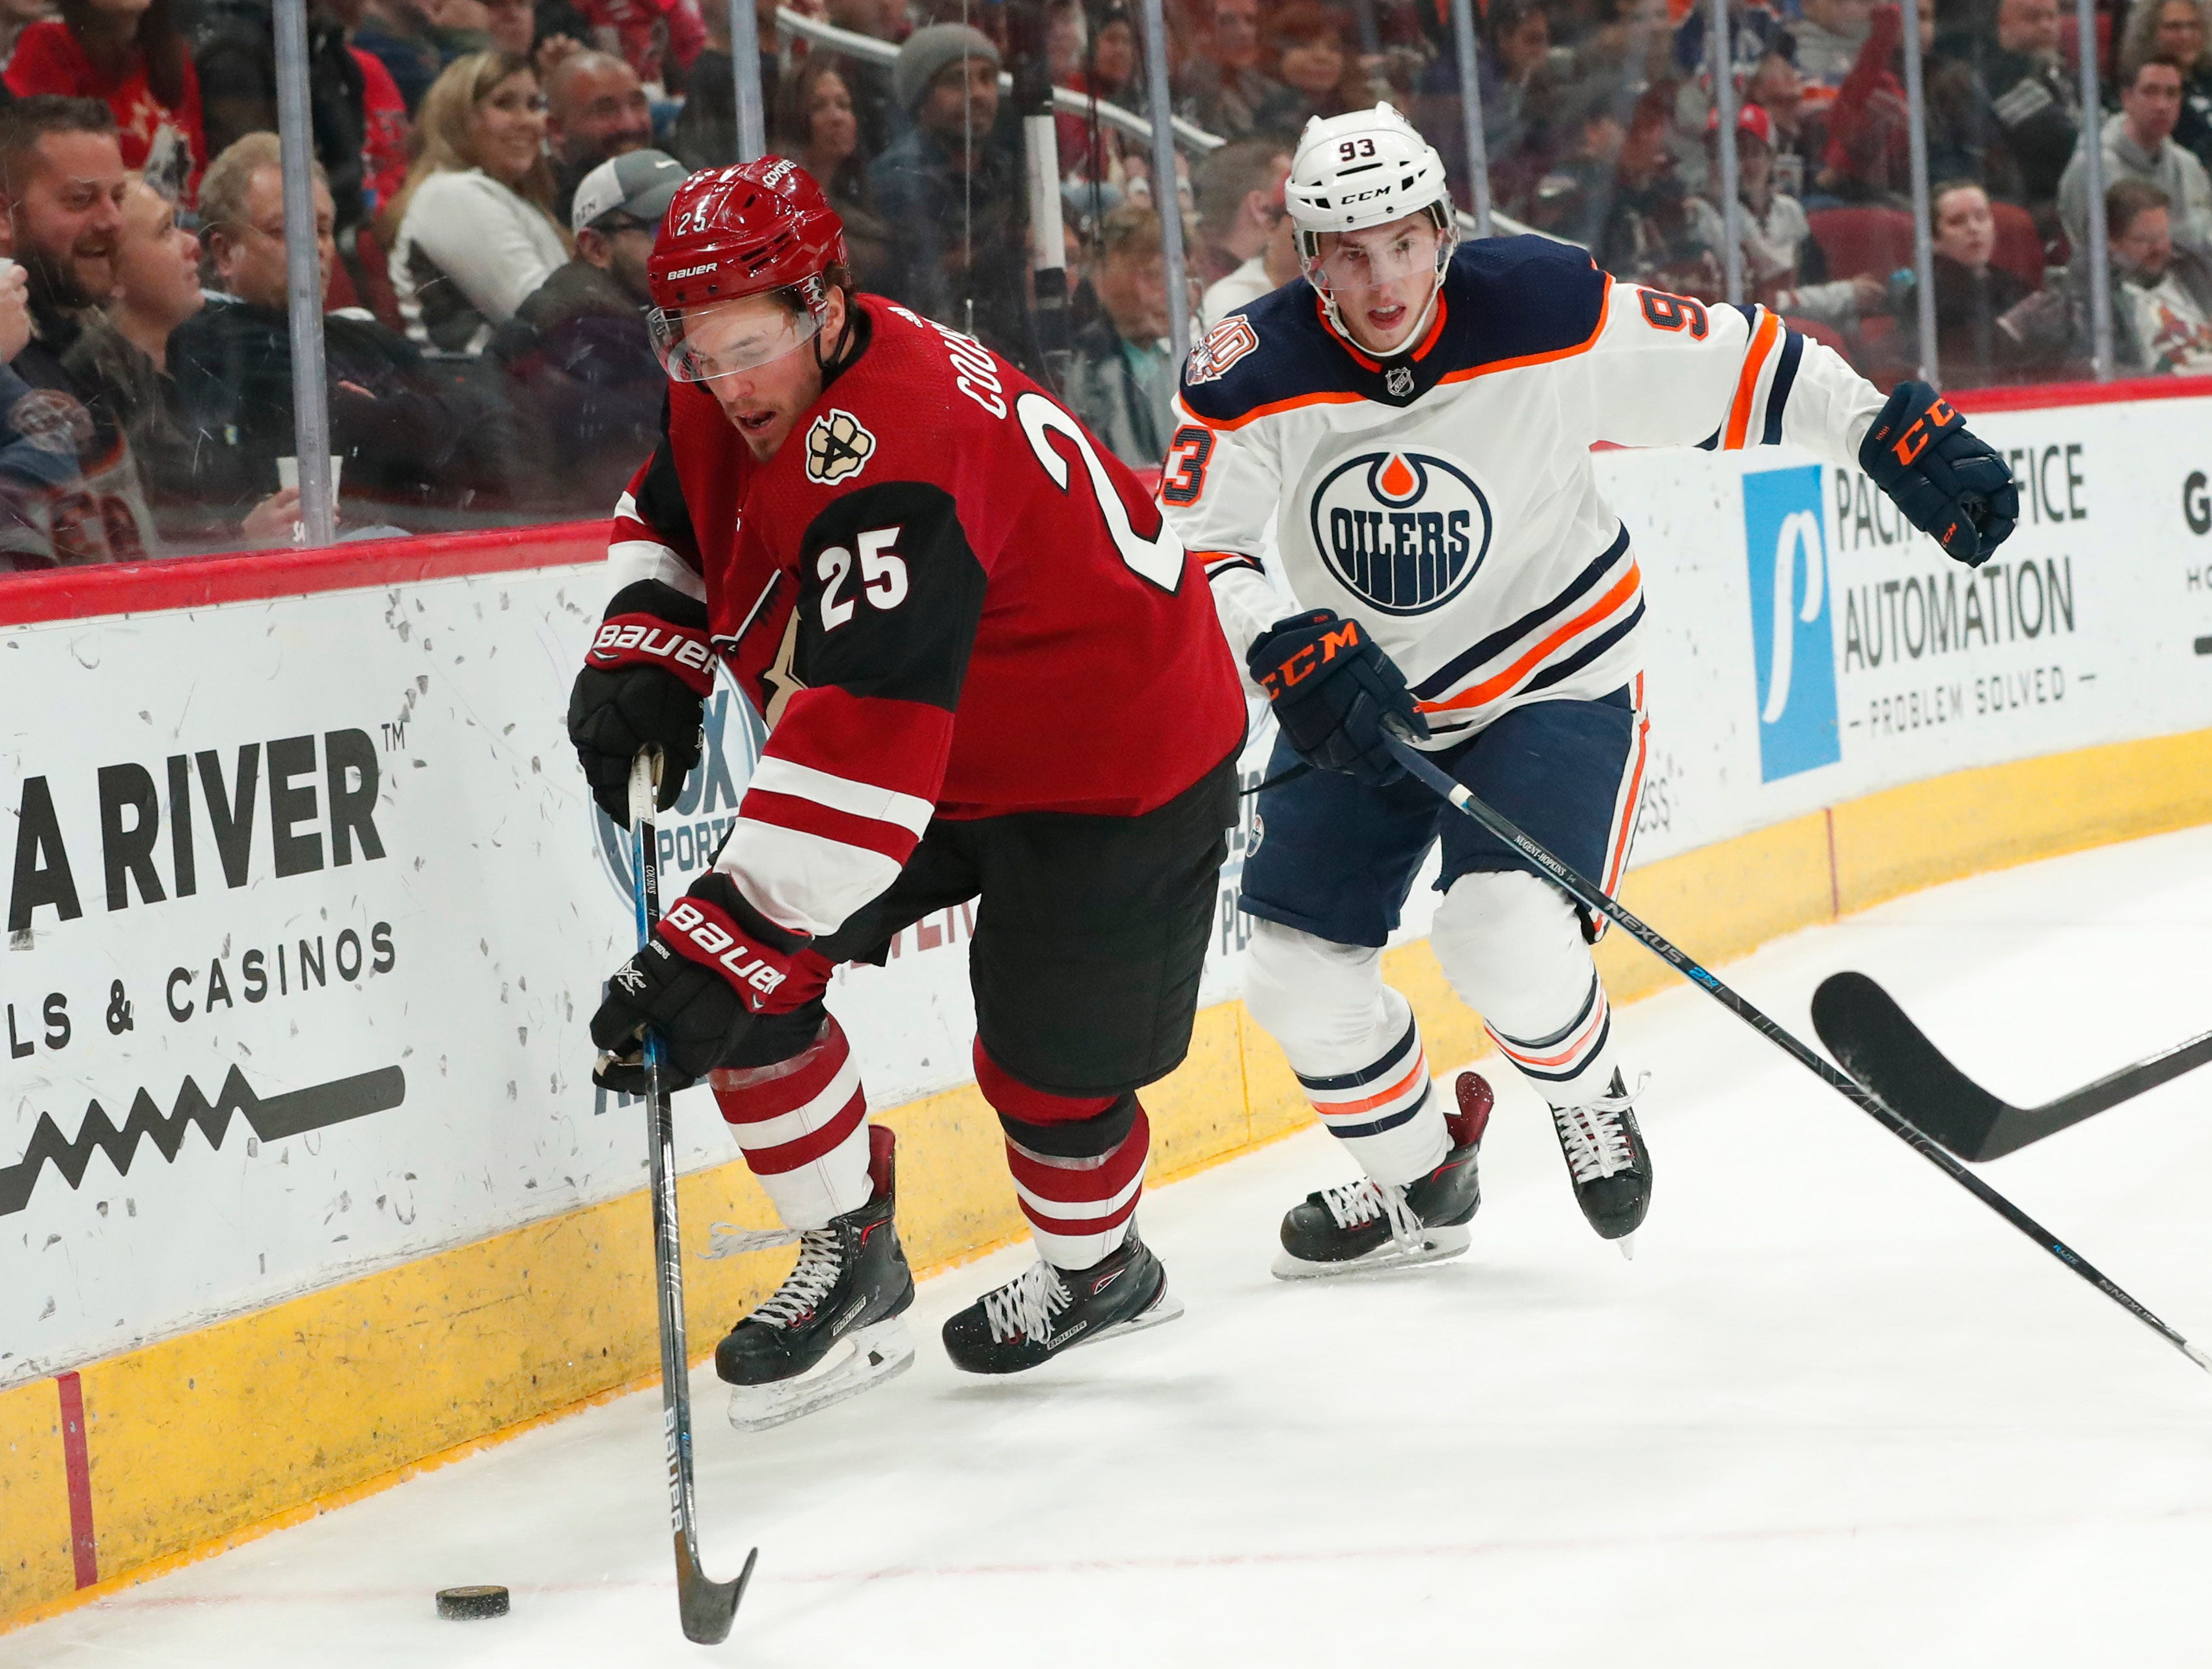 Arizona Coyotes center Nick Cousins (25) works the puck against Edmonton Oilers center Ryan Nugent-Hopkins (93) during the second period in Glendale January 2, 2019.